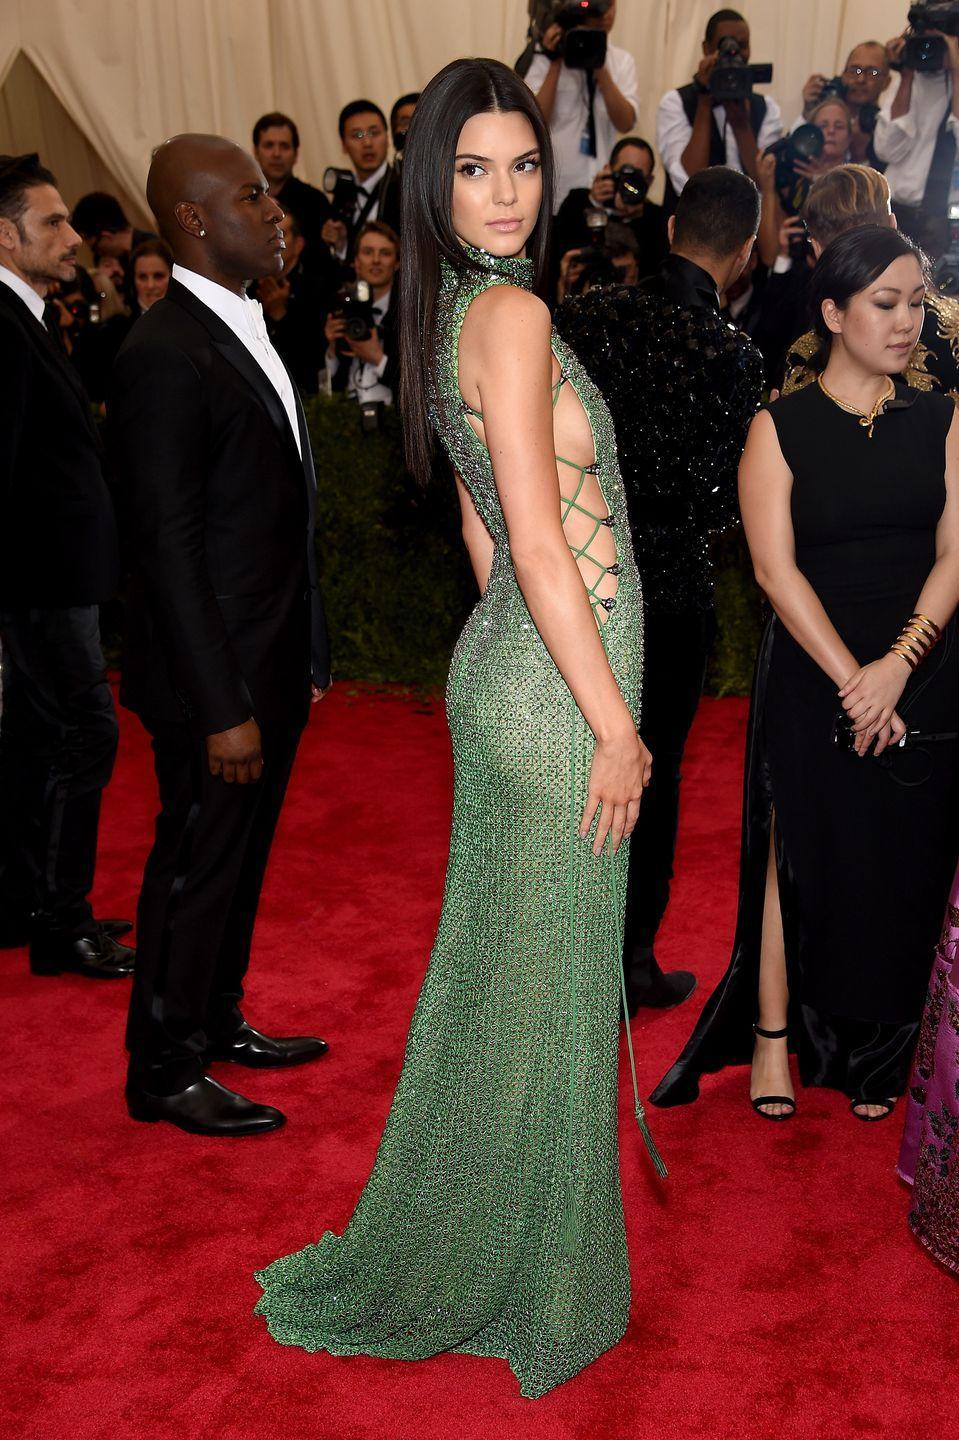 <p>From the emerald colored crystals to the cascading train, the Calvin Klein gown Kendall Jenner wore to the 2015 Met Gala gives us serious mermaid vibes. </p>